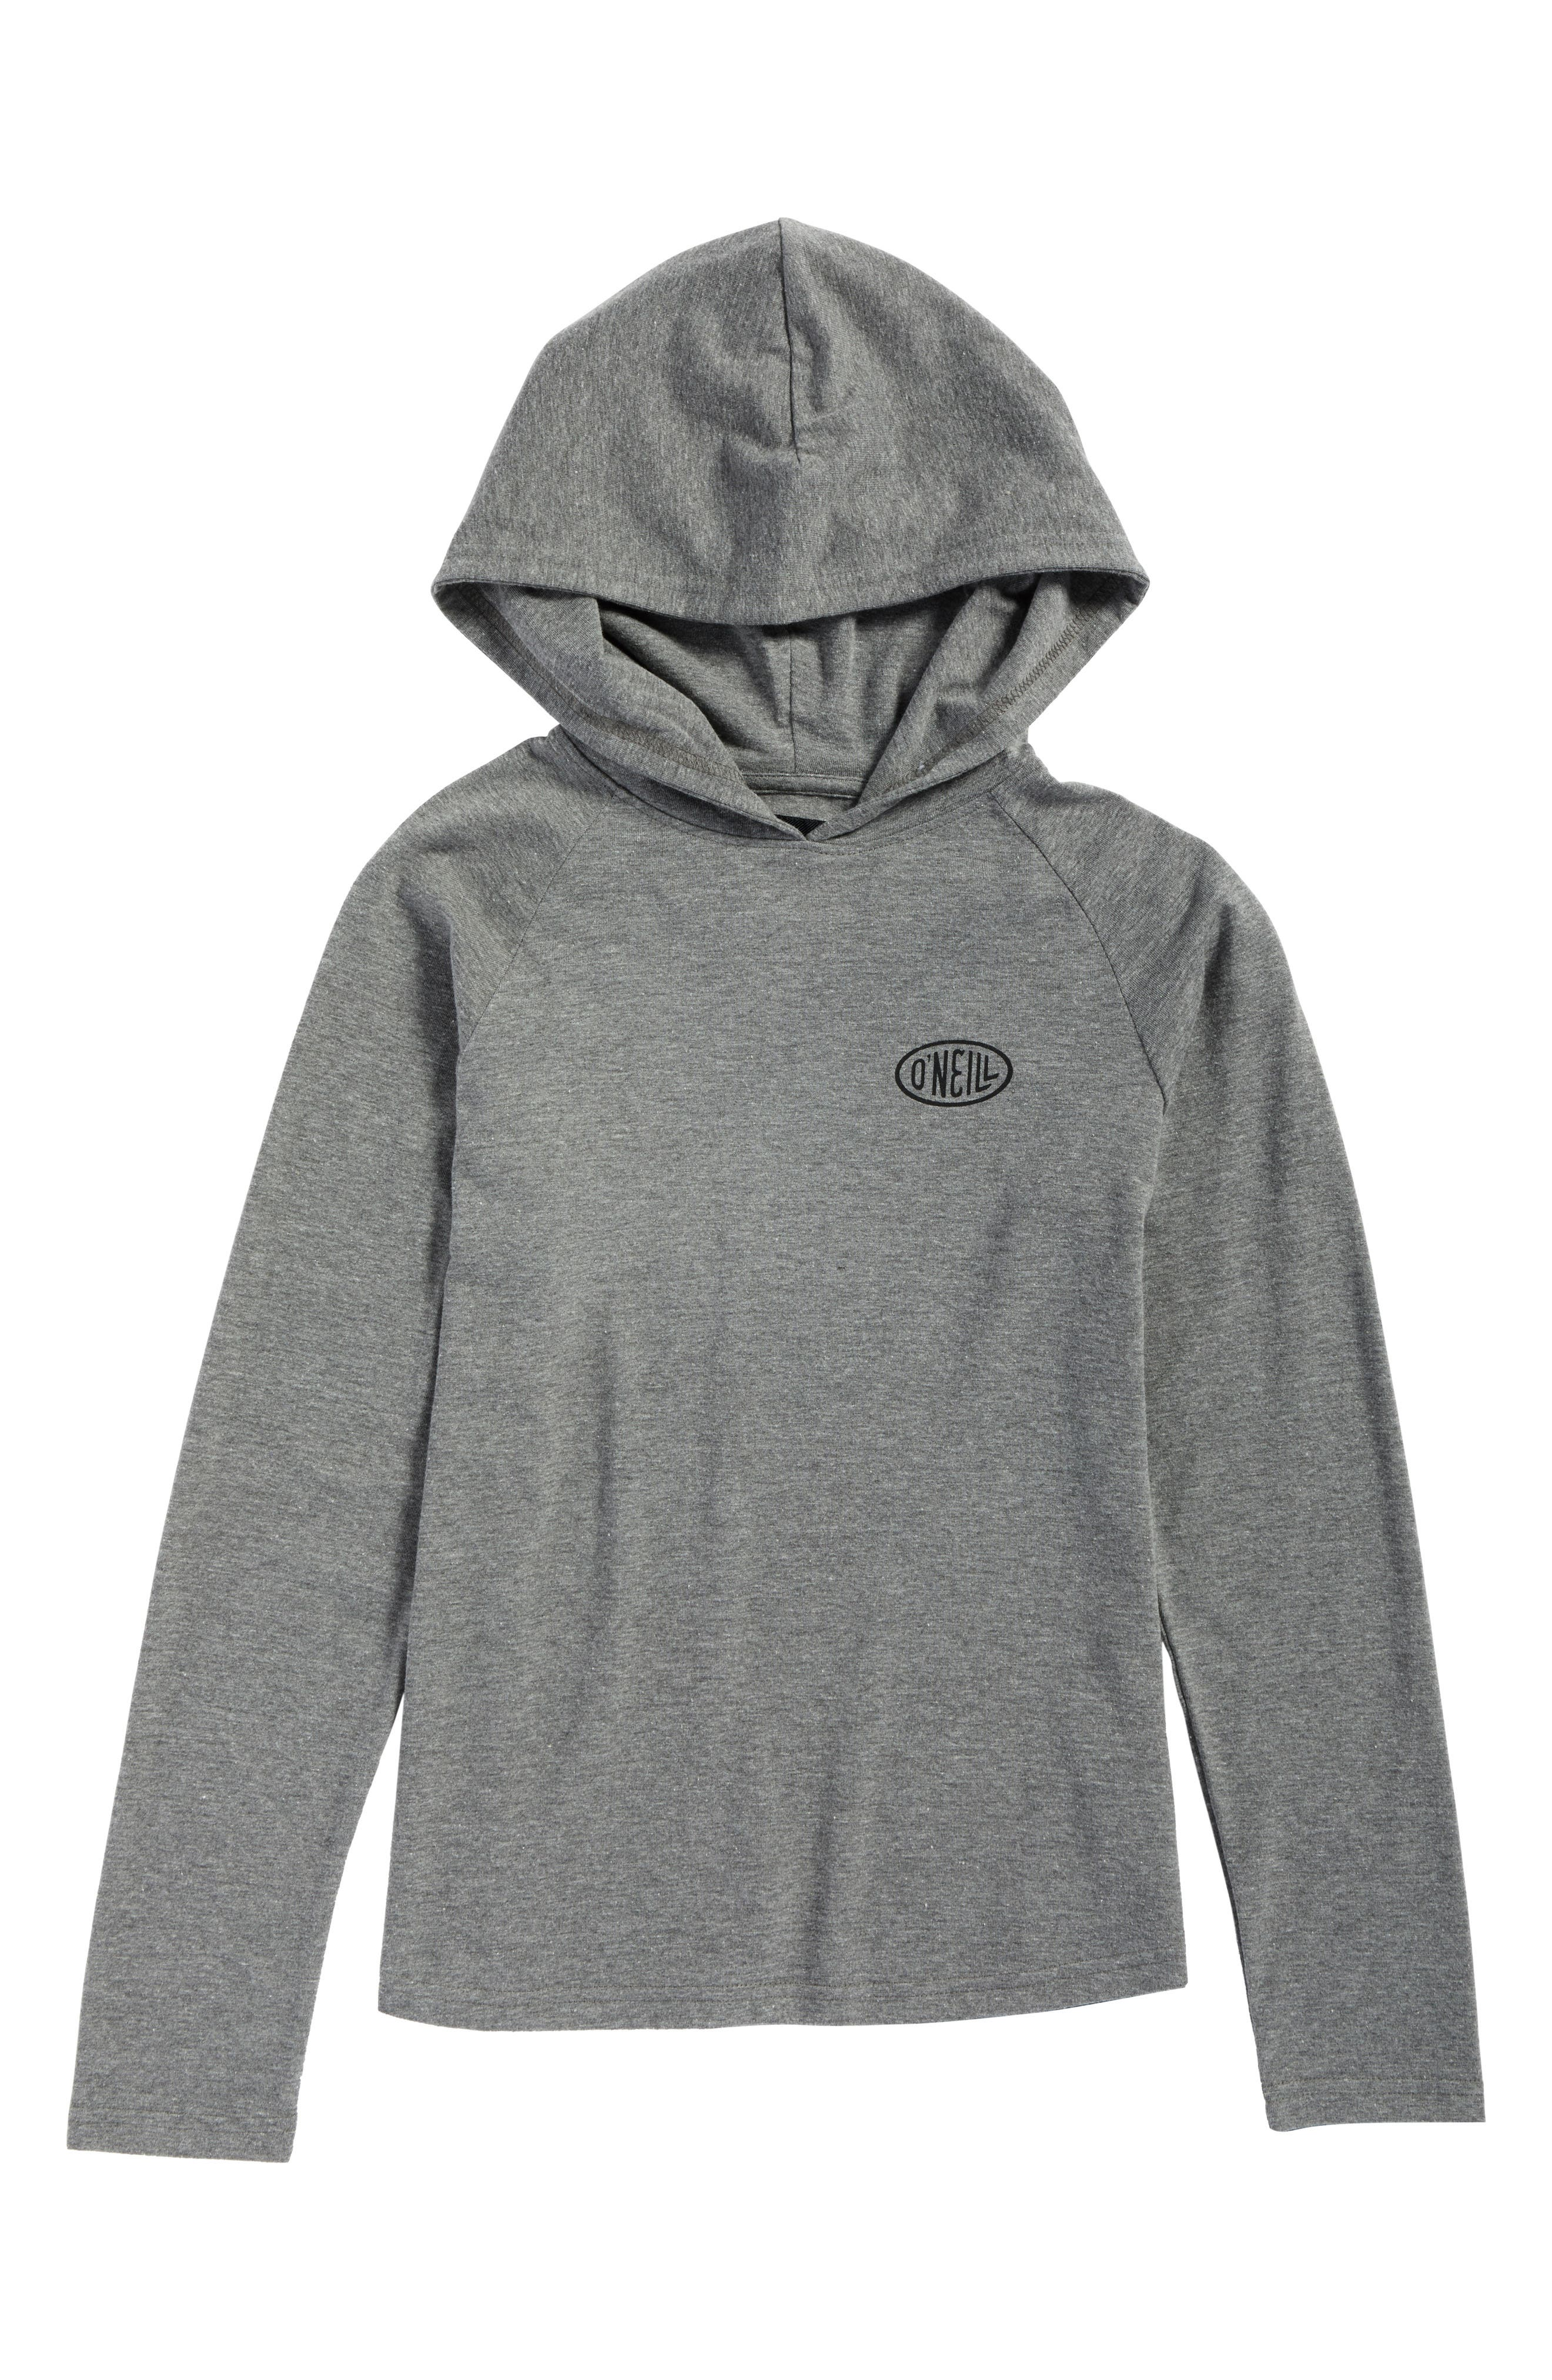 Malcom Logo Graphic Pullover Hoodie,                         Main,                         color, Heather Grey